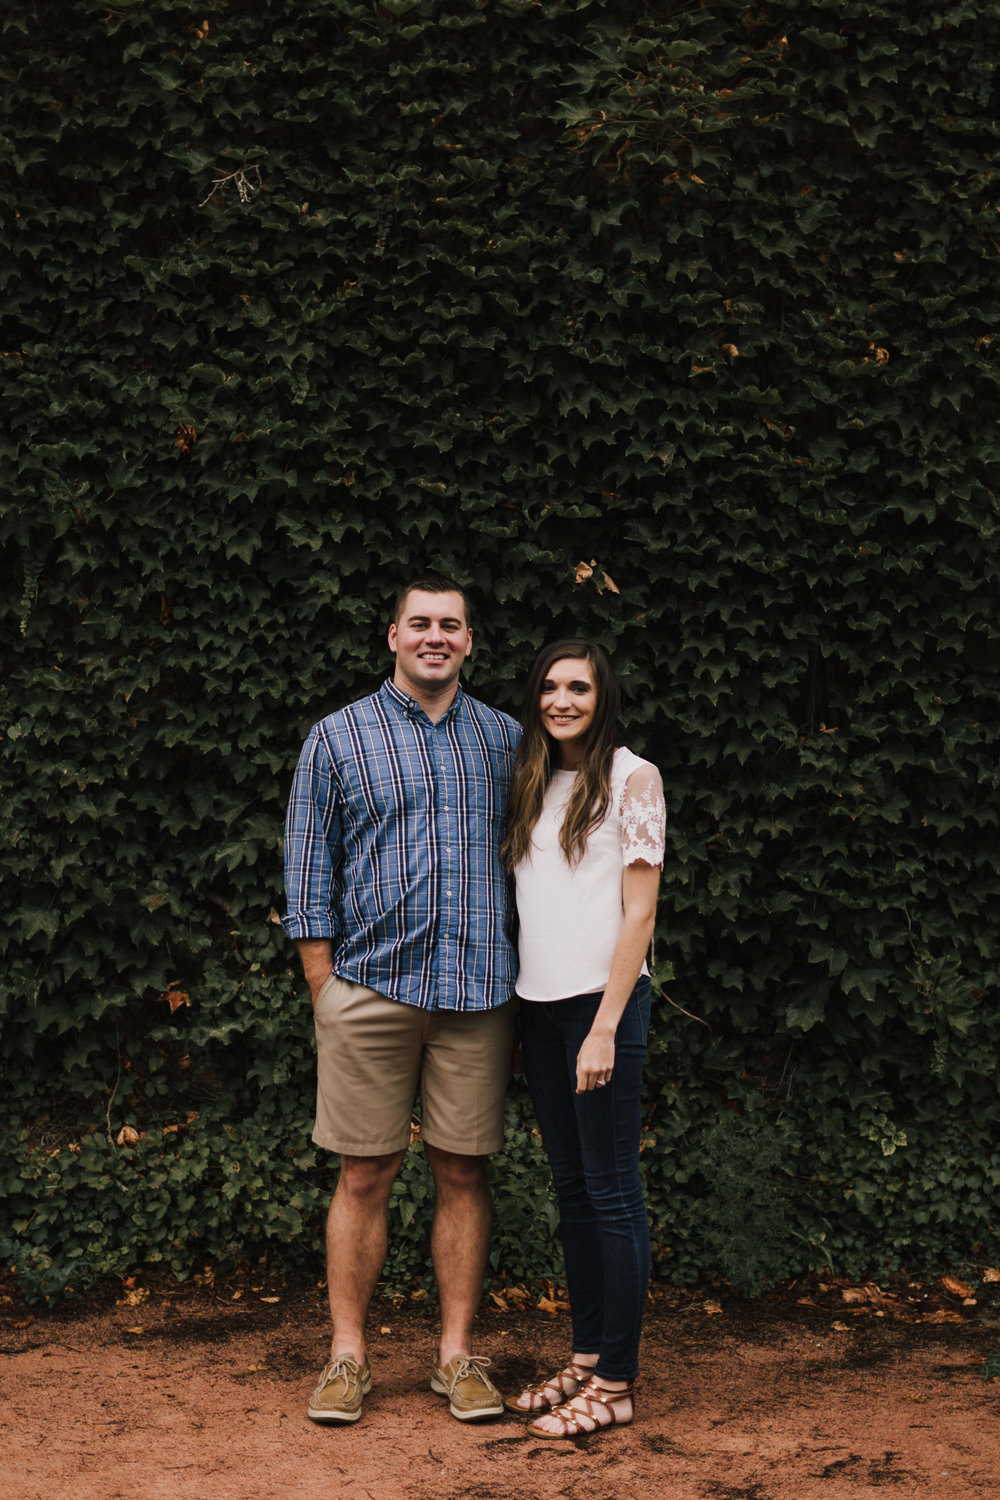 alyssa barletter photography emperial brewery engagement session downtown kansas city kc crossroads -1.jpg